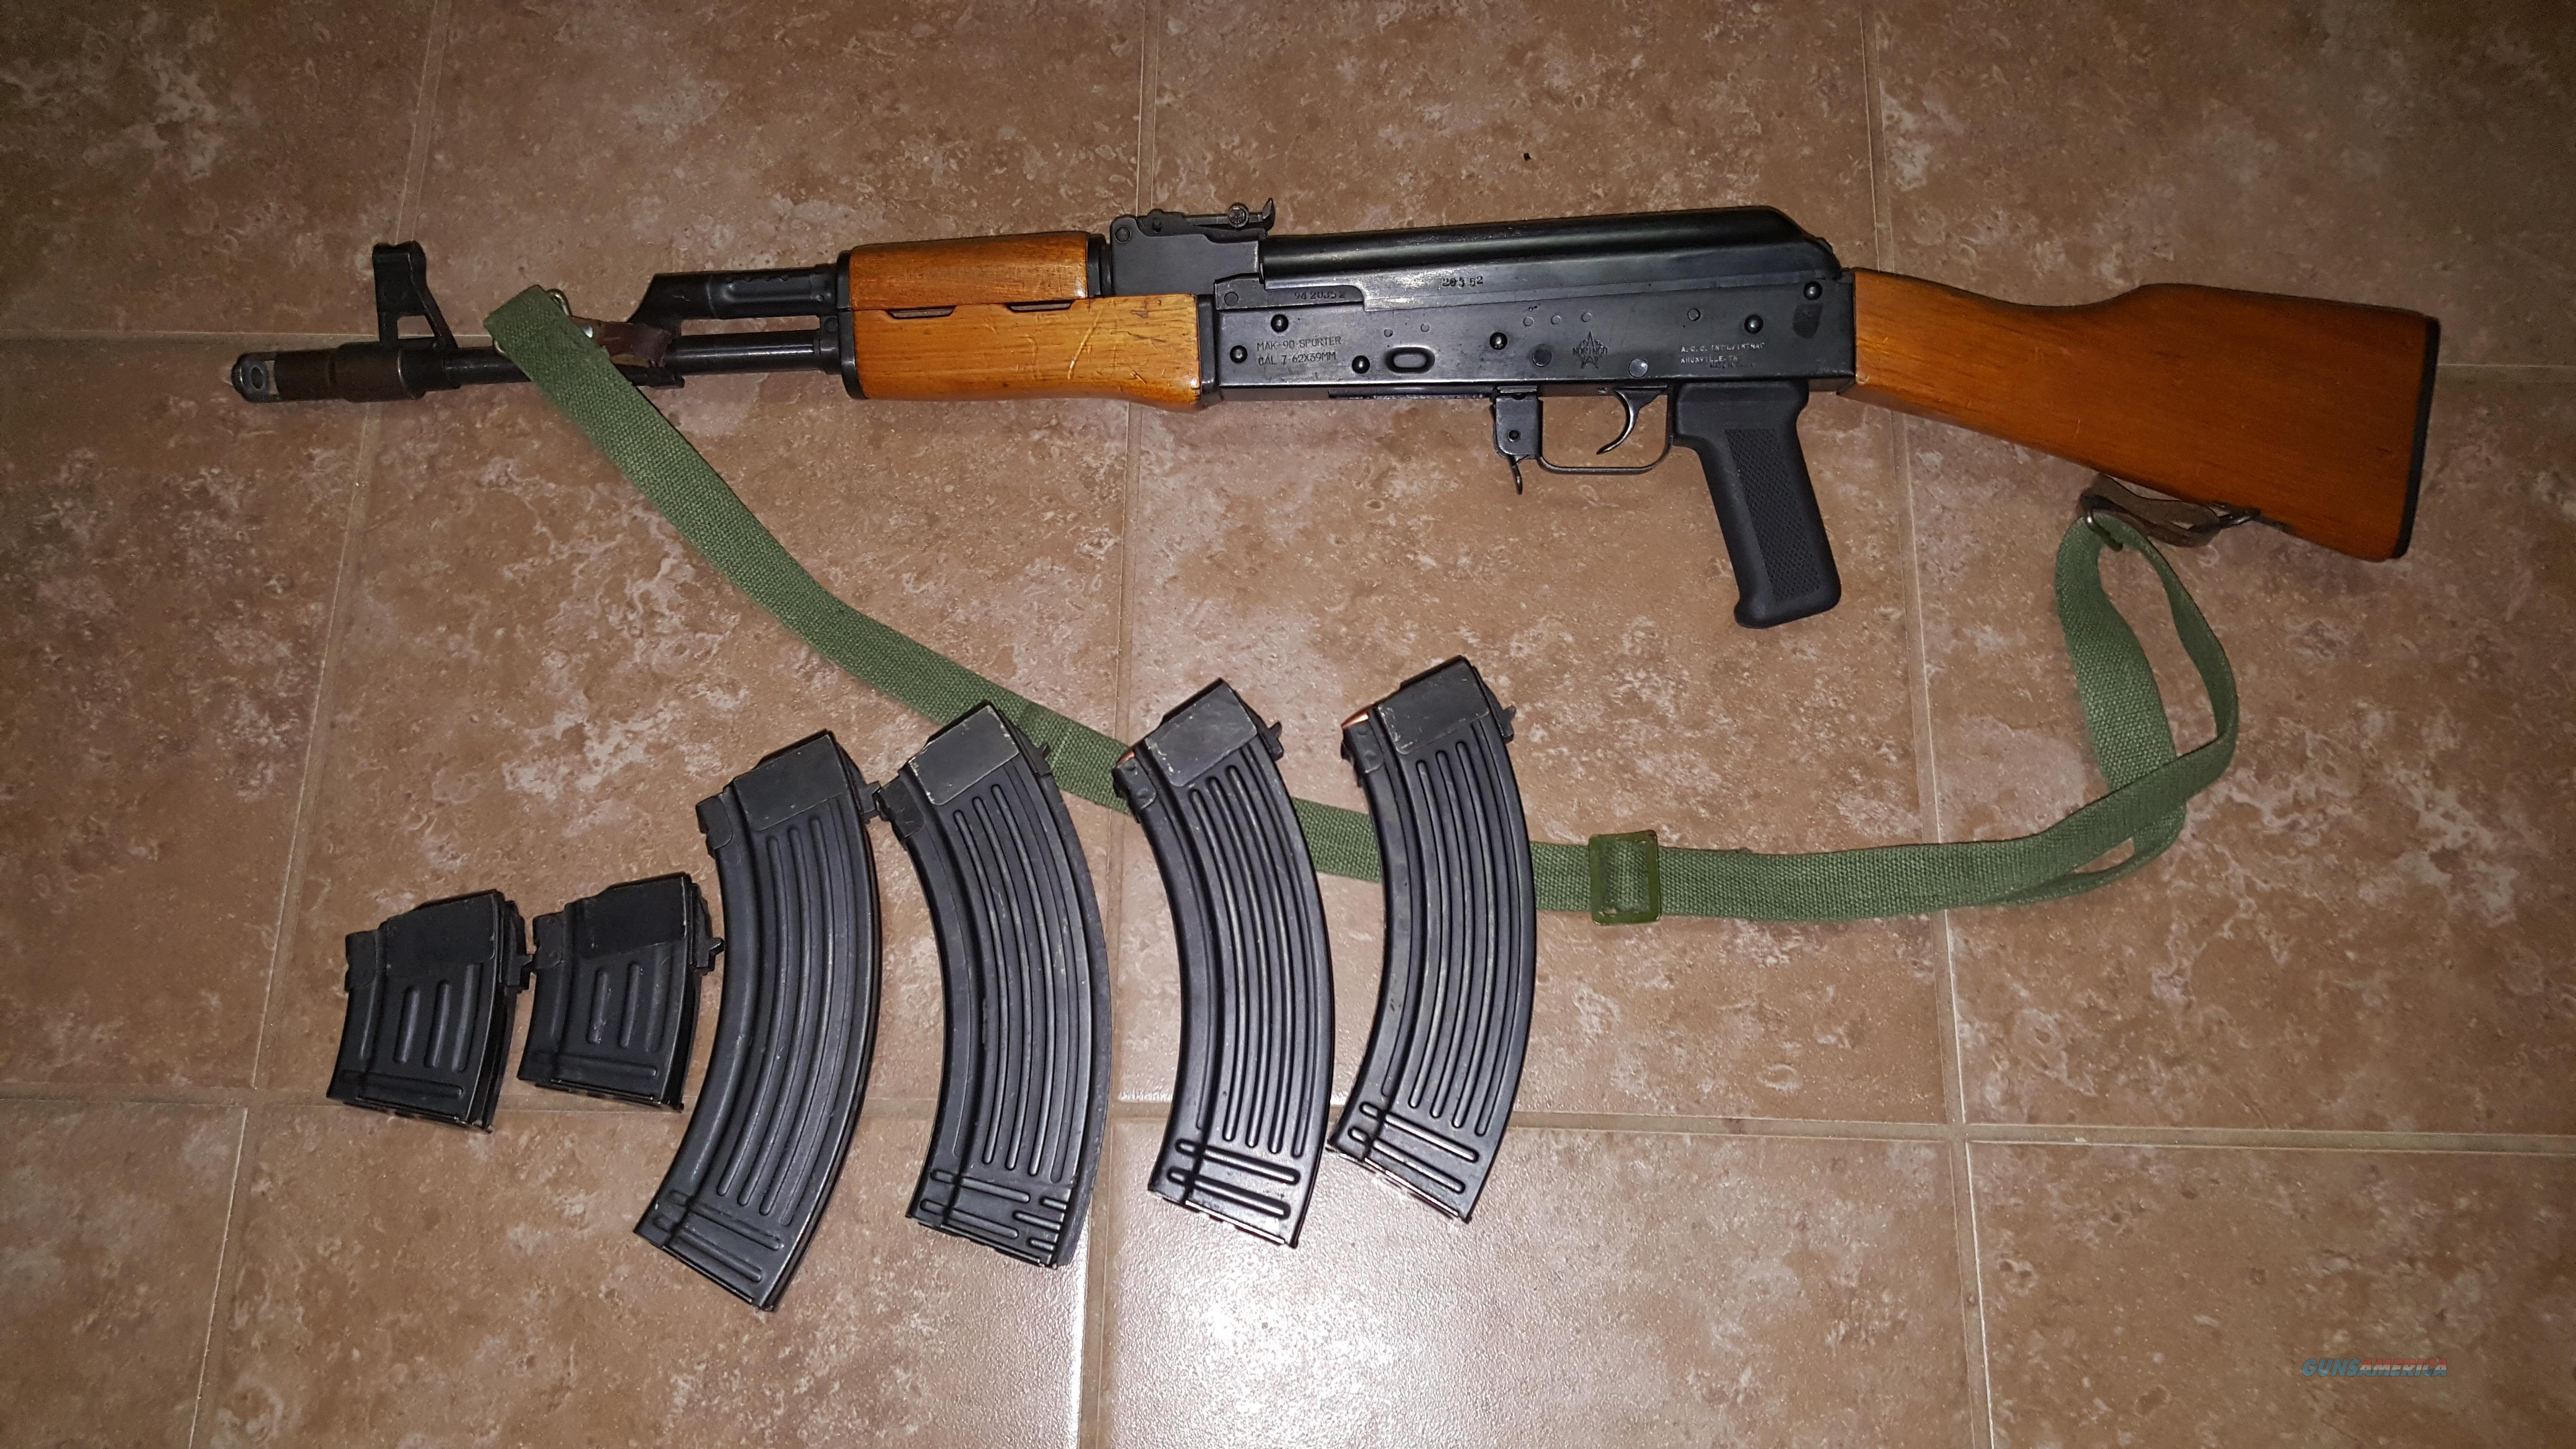 Norinco Mak-90 Sporter 7.62x39mm AK-47 w/ mags and ammo  Guns > Rifles > AK-47 Rifles (and copies) > Full Stock